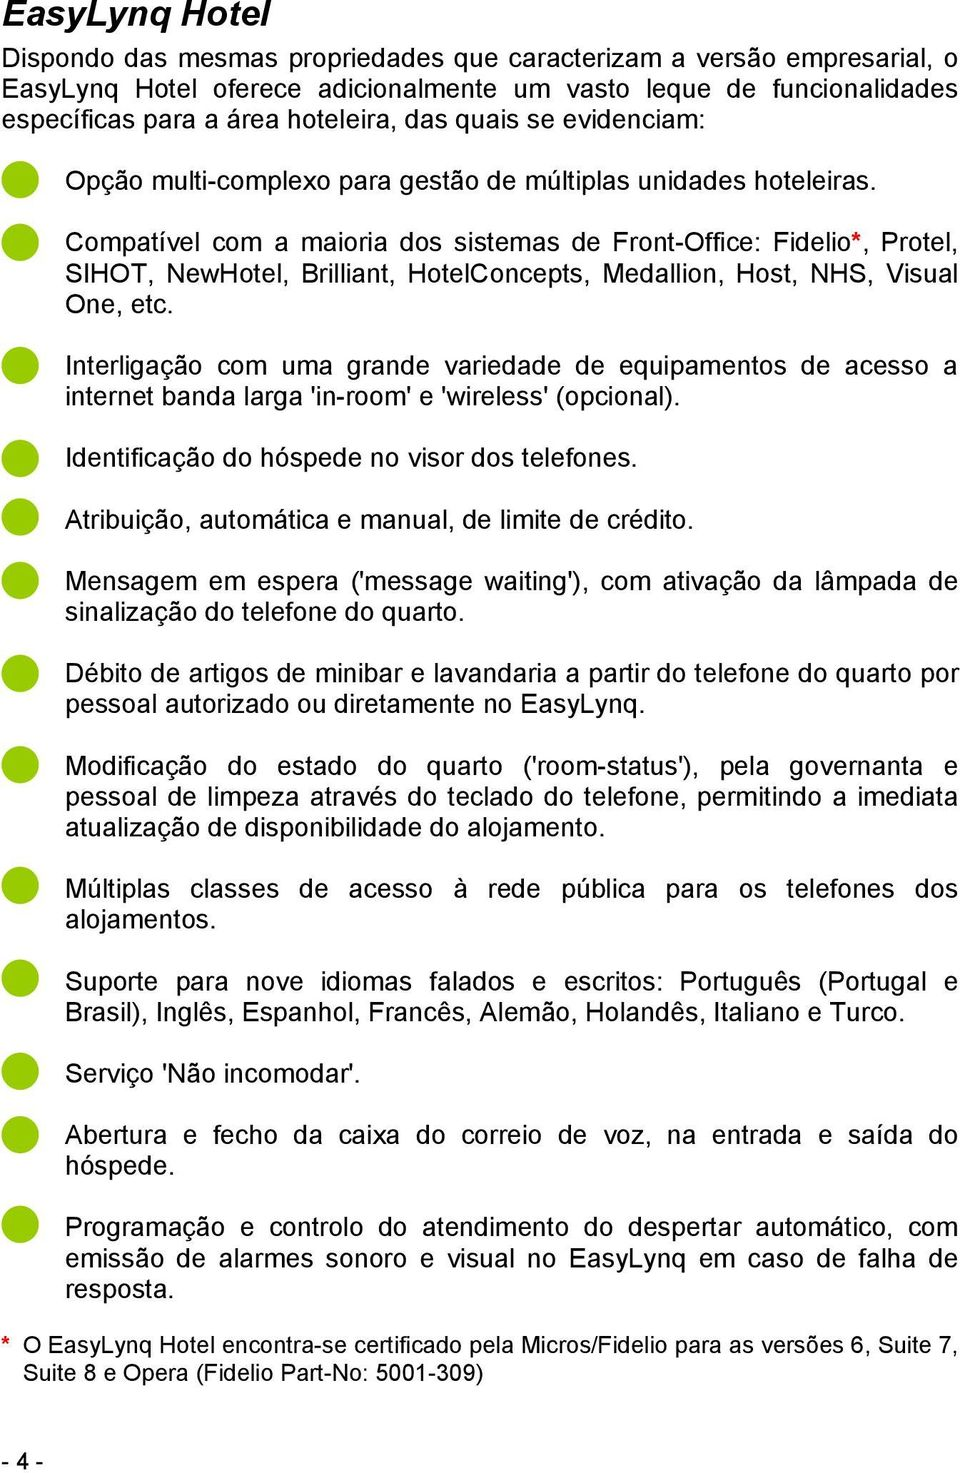 Compatível com a maioria dos sistemas de Front-Office: Fidelio*, Protel, SIHOT, NewHotel, Brilliant, HotelConcepts, Medallion, Host, NHS, Visual One, etc.